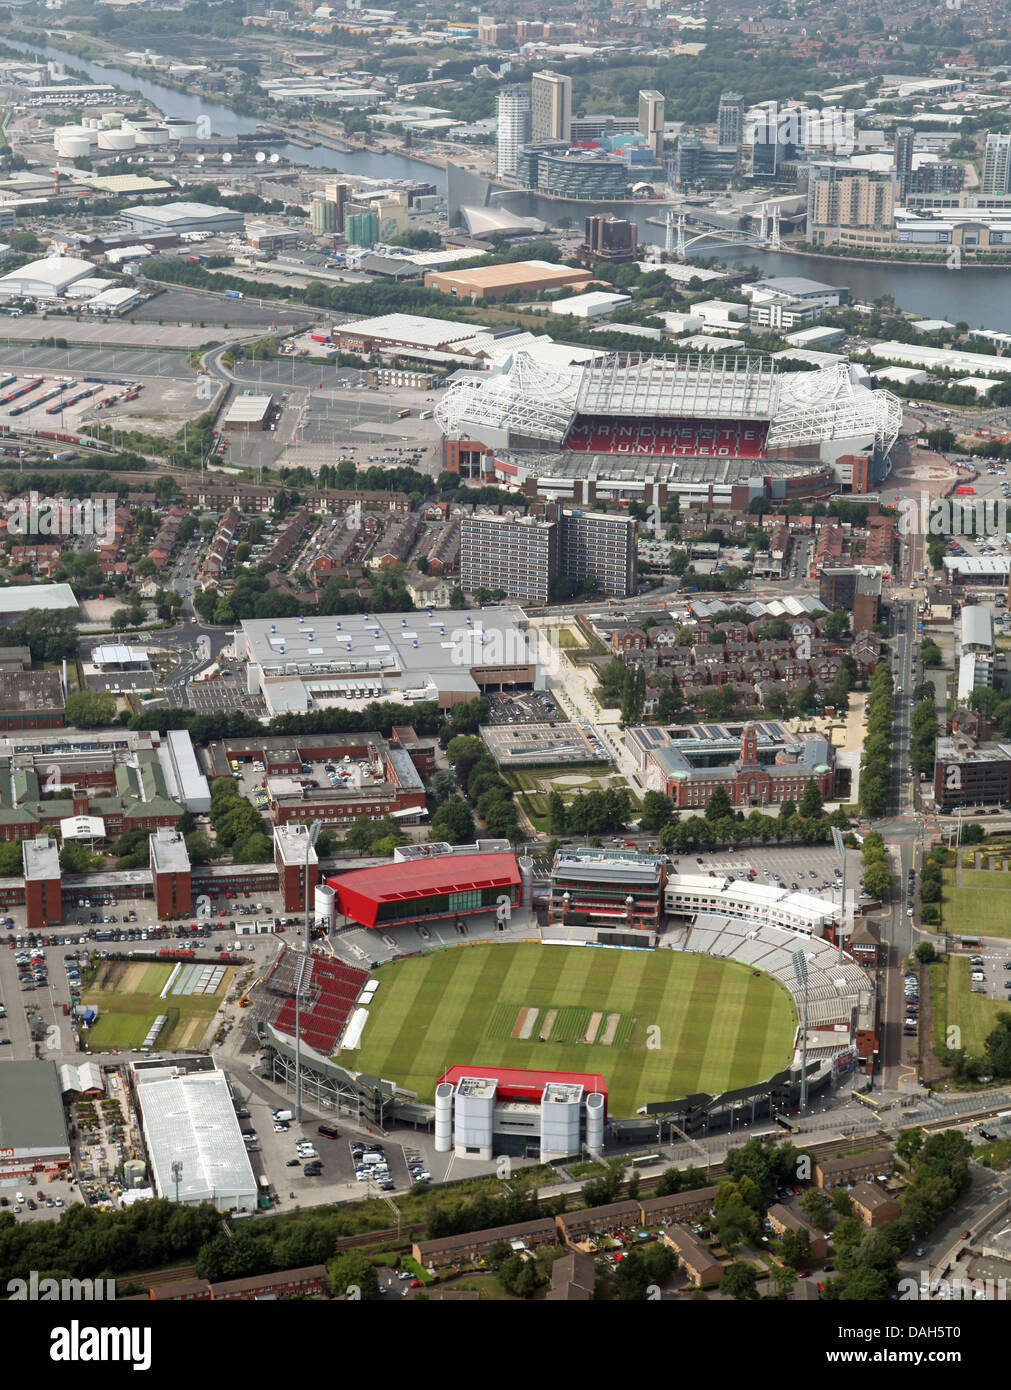 aerial view of Old Trafford cricket ground home of Lancashire CCC & Old Trafford football Stadium, Manchester - Stock Image